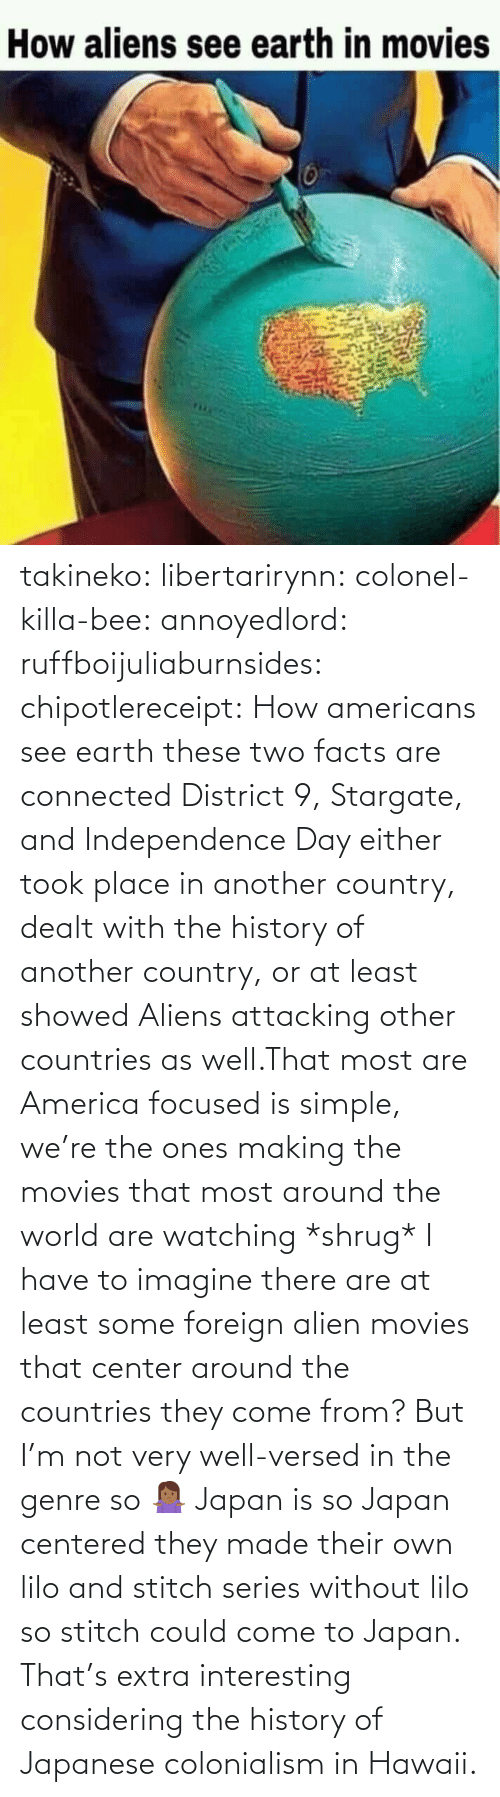 dealt: takineko:  libertarirynn:  colonel-killa-bee:  annoyedlord: ruffboijuliaburnsides:  chipotlereceipt: How americans see earth these two facts are connected     District 9, Stargate, and Independence Day either took place in another country, dealt with the history of another country, or at least showed Aliens attacking other countries as well.That most are America focused is simple, we're the ones making the movies that most around the world are watching *shrug*   I have to imagine there are at least some foreign alien movies that center around the countries they come from? But I'm not very well-versed in the genre so 🤷🏾‍♀️   Japan is so Japan centered they made their own lilo and stitch series without lilo so stitch could come to Japan.    That's extra interesting considering the history of Japanese colonialism in Hawaii.